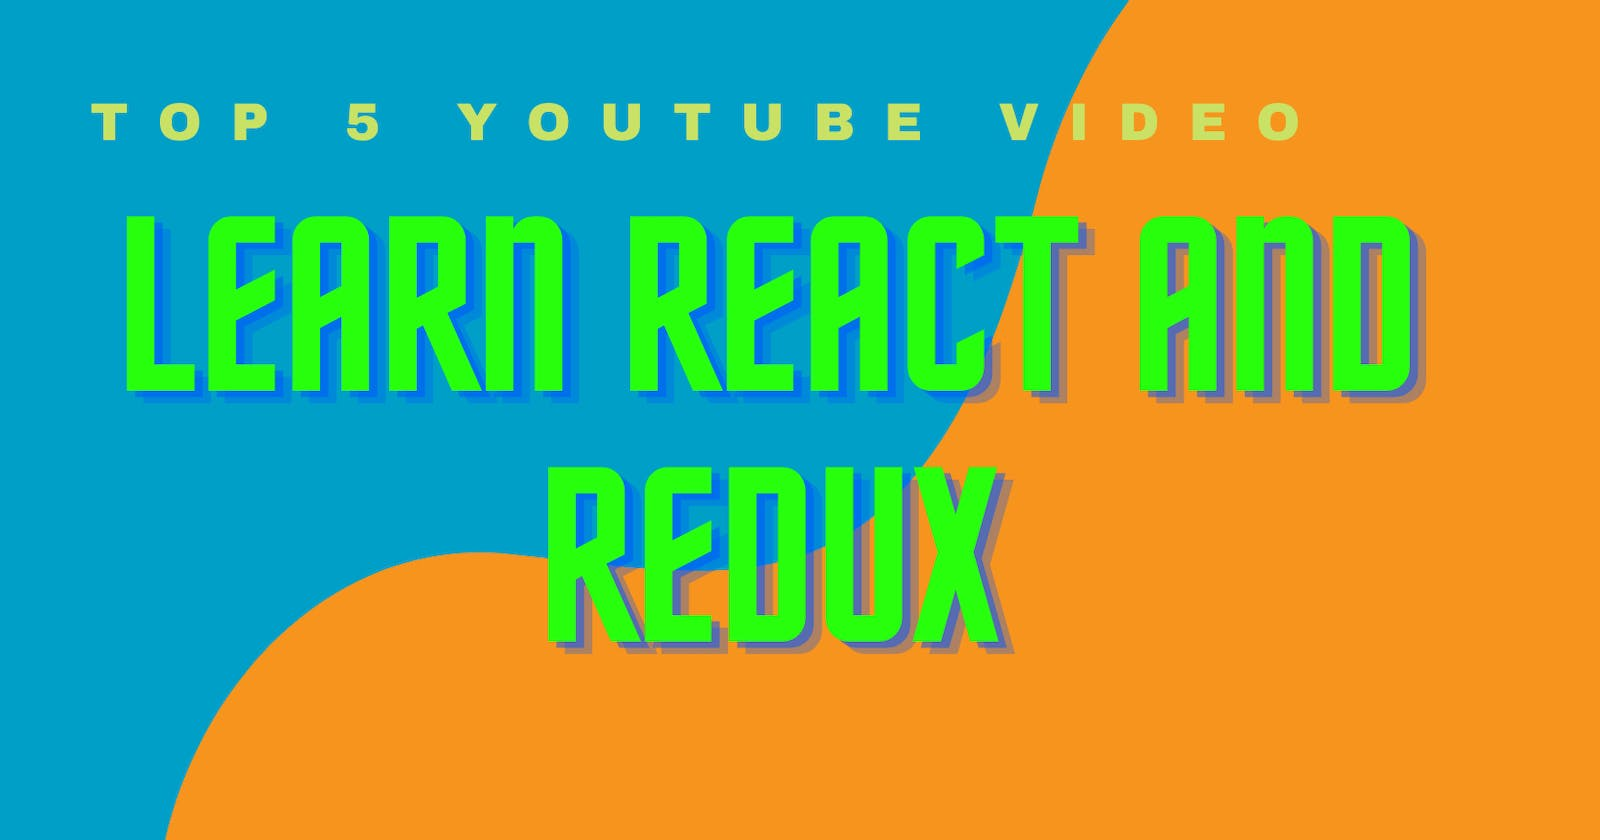 Top 5 Youtube Video Tutorial to Learn React & Redux in 2021